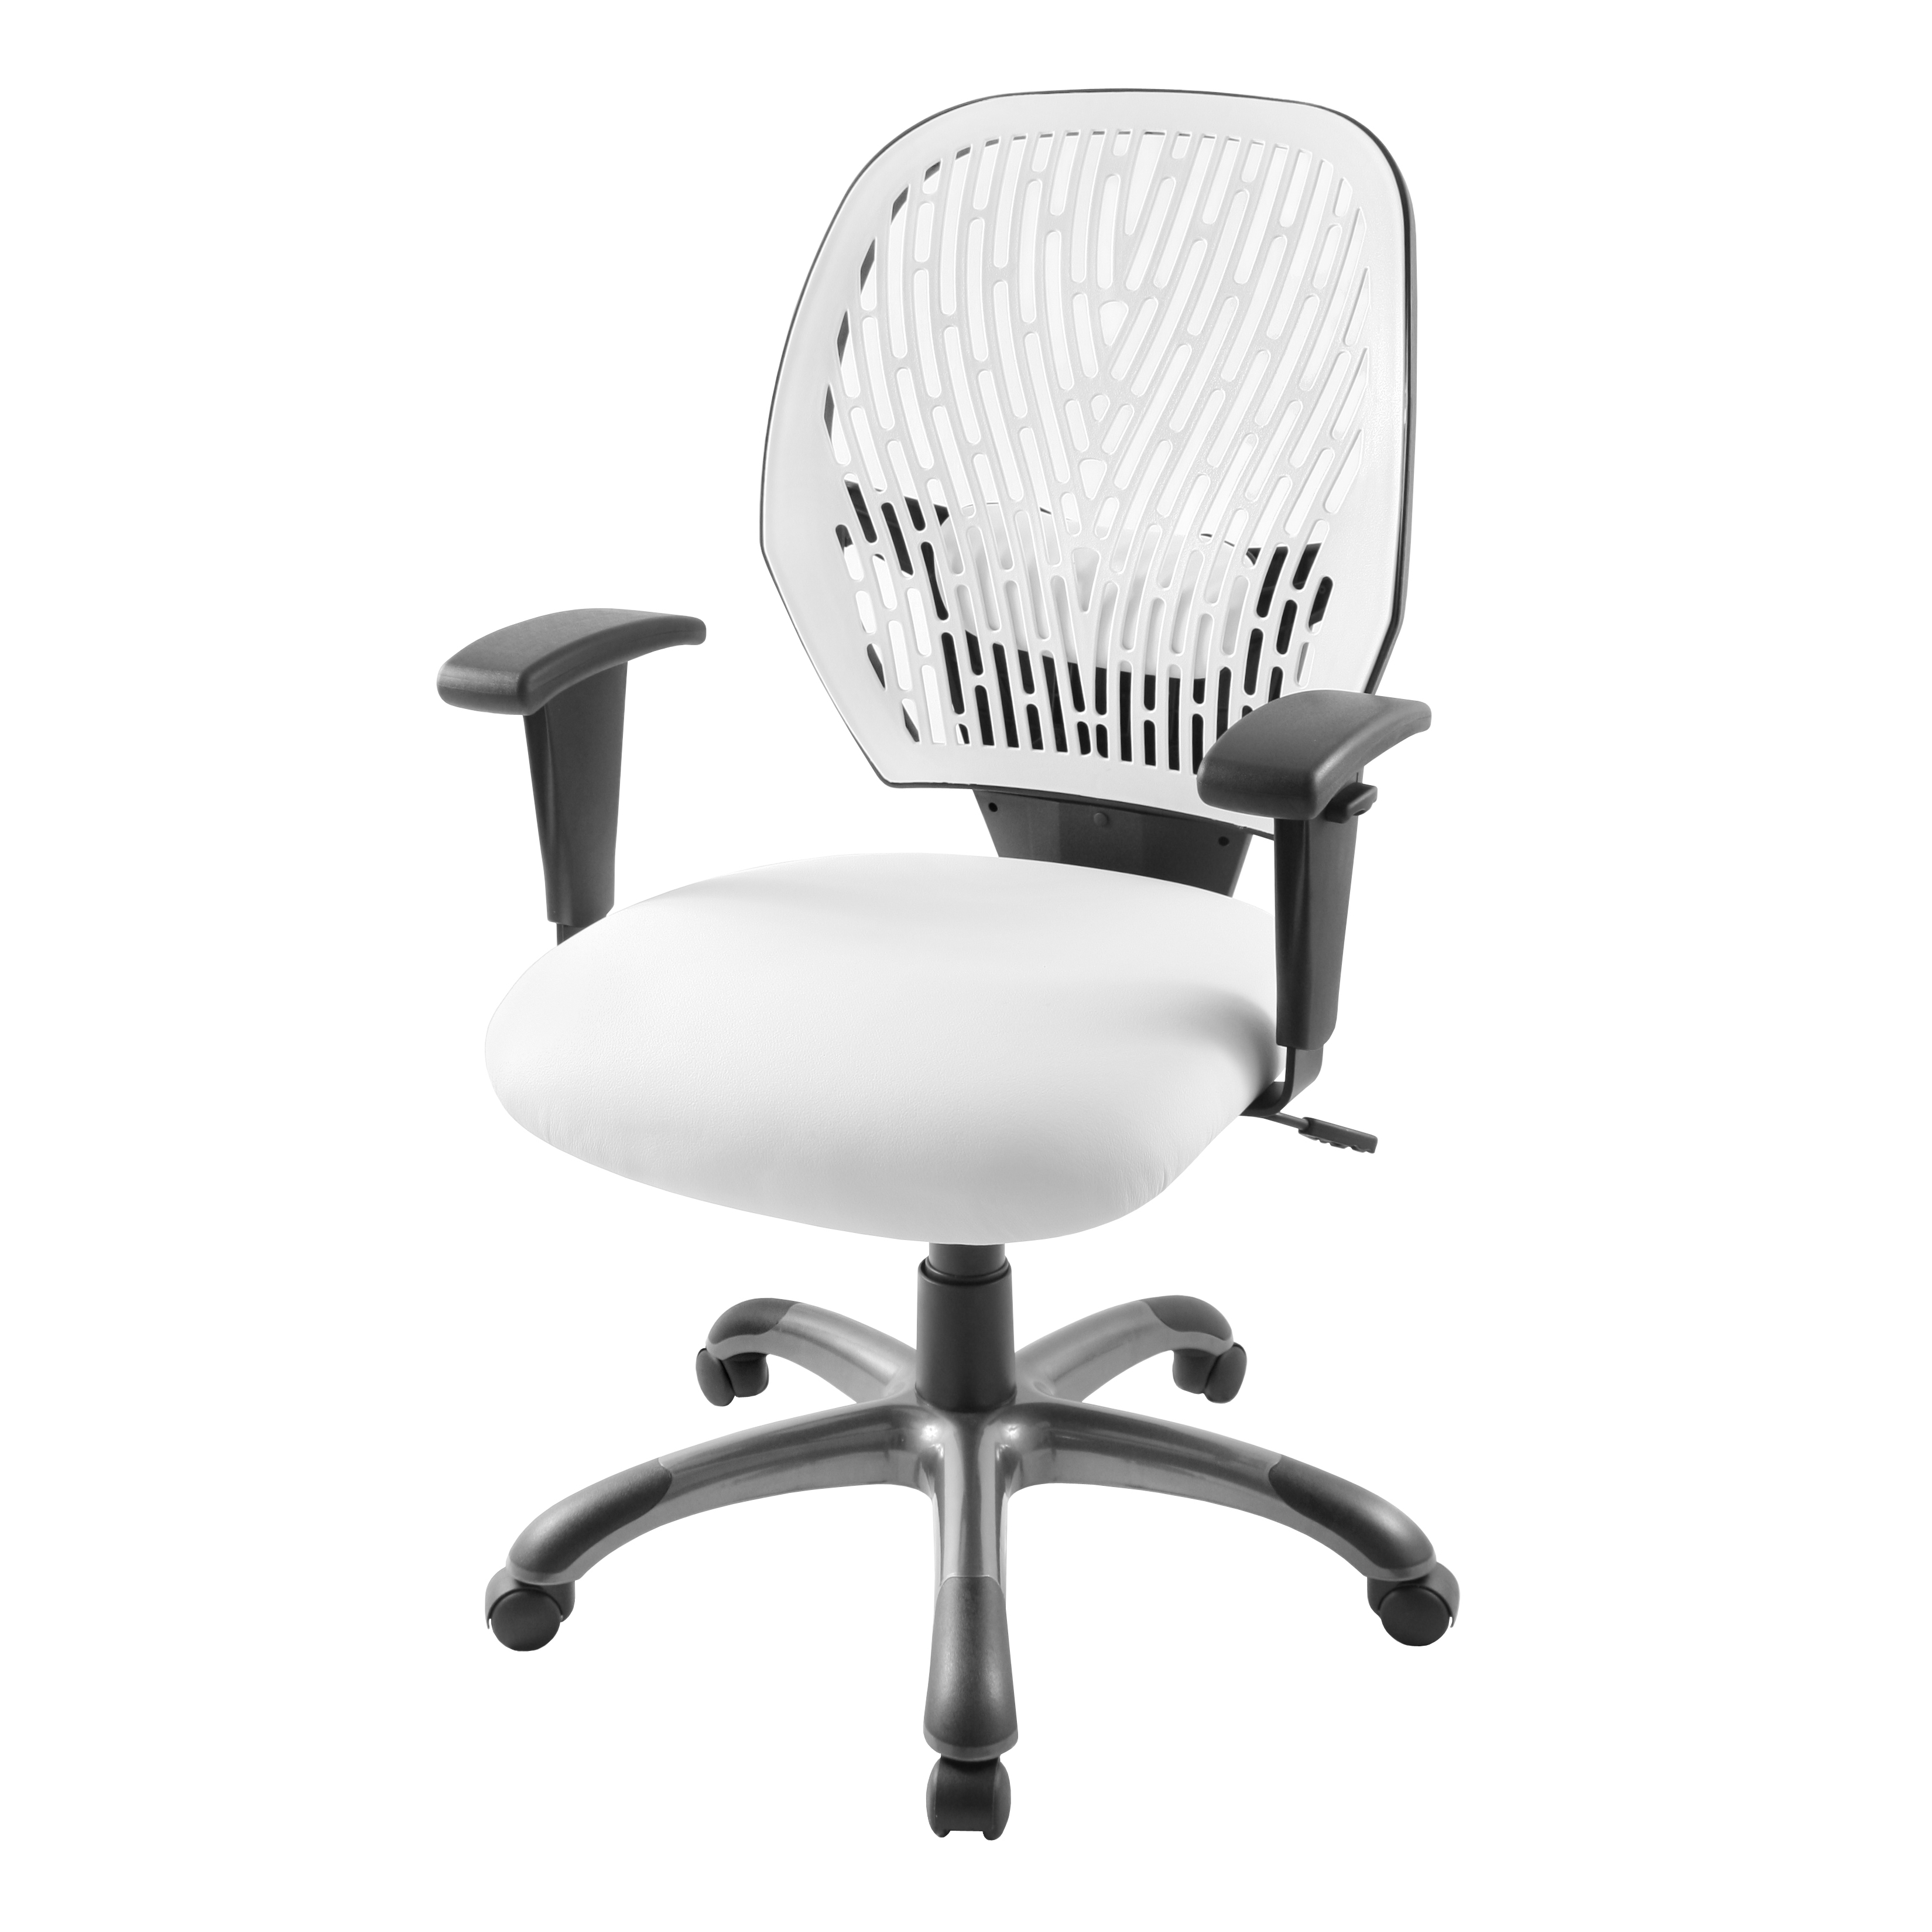 Current Furniture: Accessible Walmart Desk Chairs For Good Office Furniture Regarding Sofa Desk Chairs (Gallery 9 of 20)